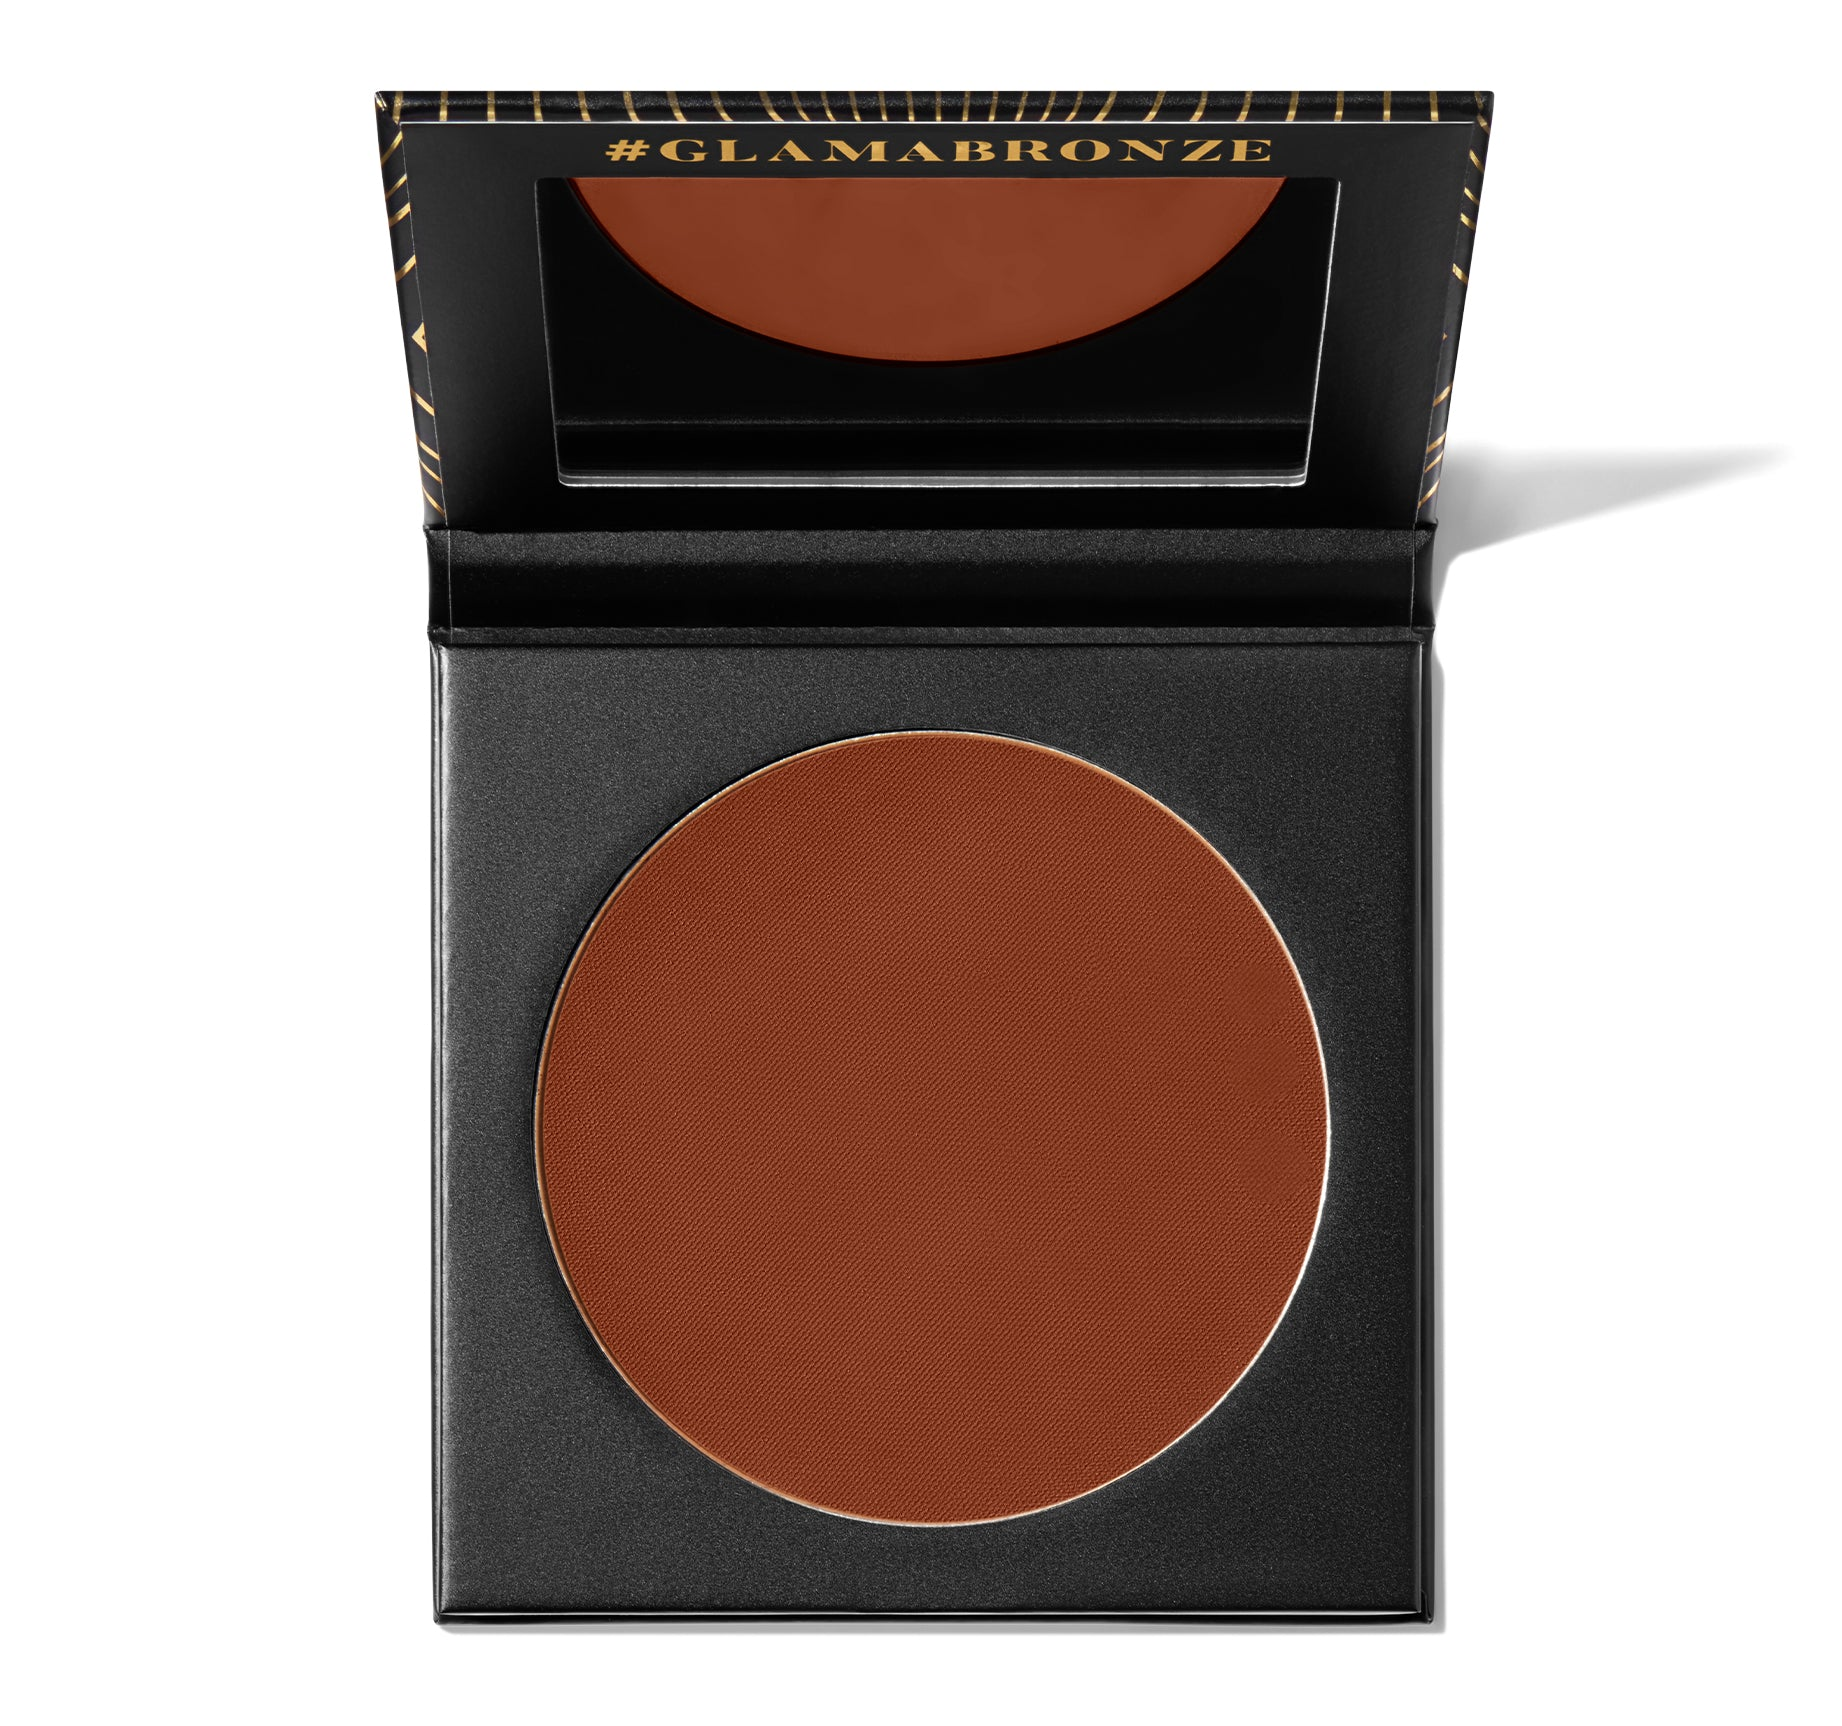 GLAMABRONZE FACE & BODY BRONZER - LEADER, view larger image